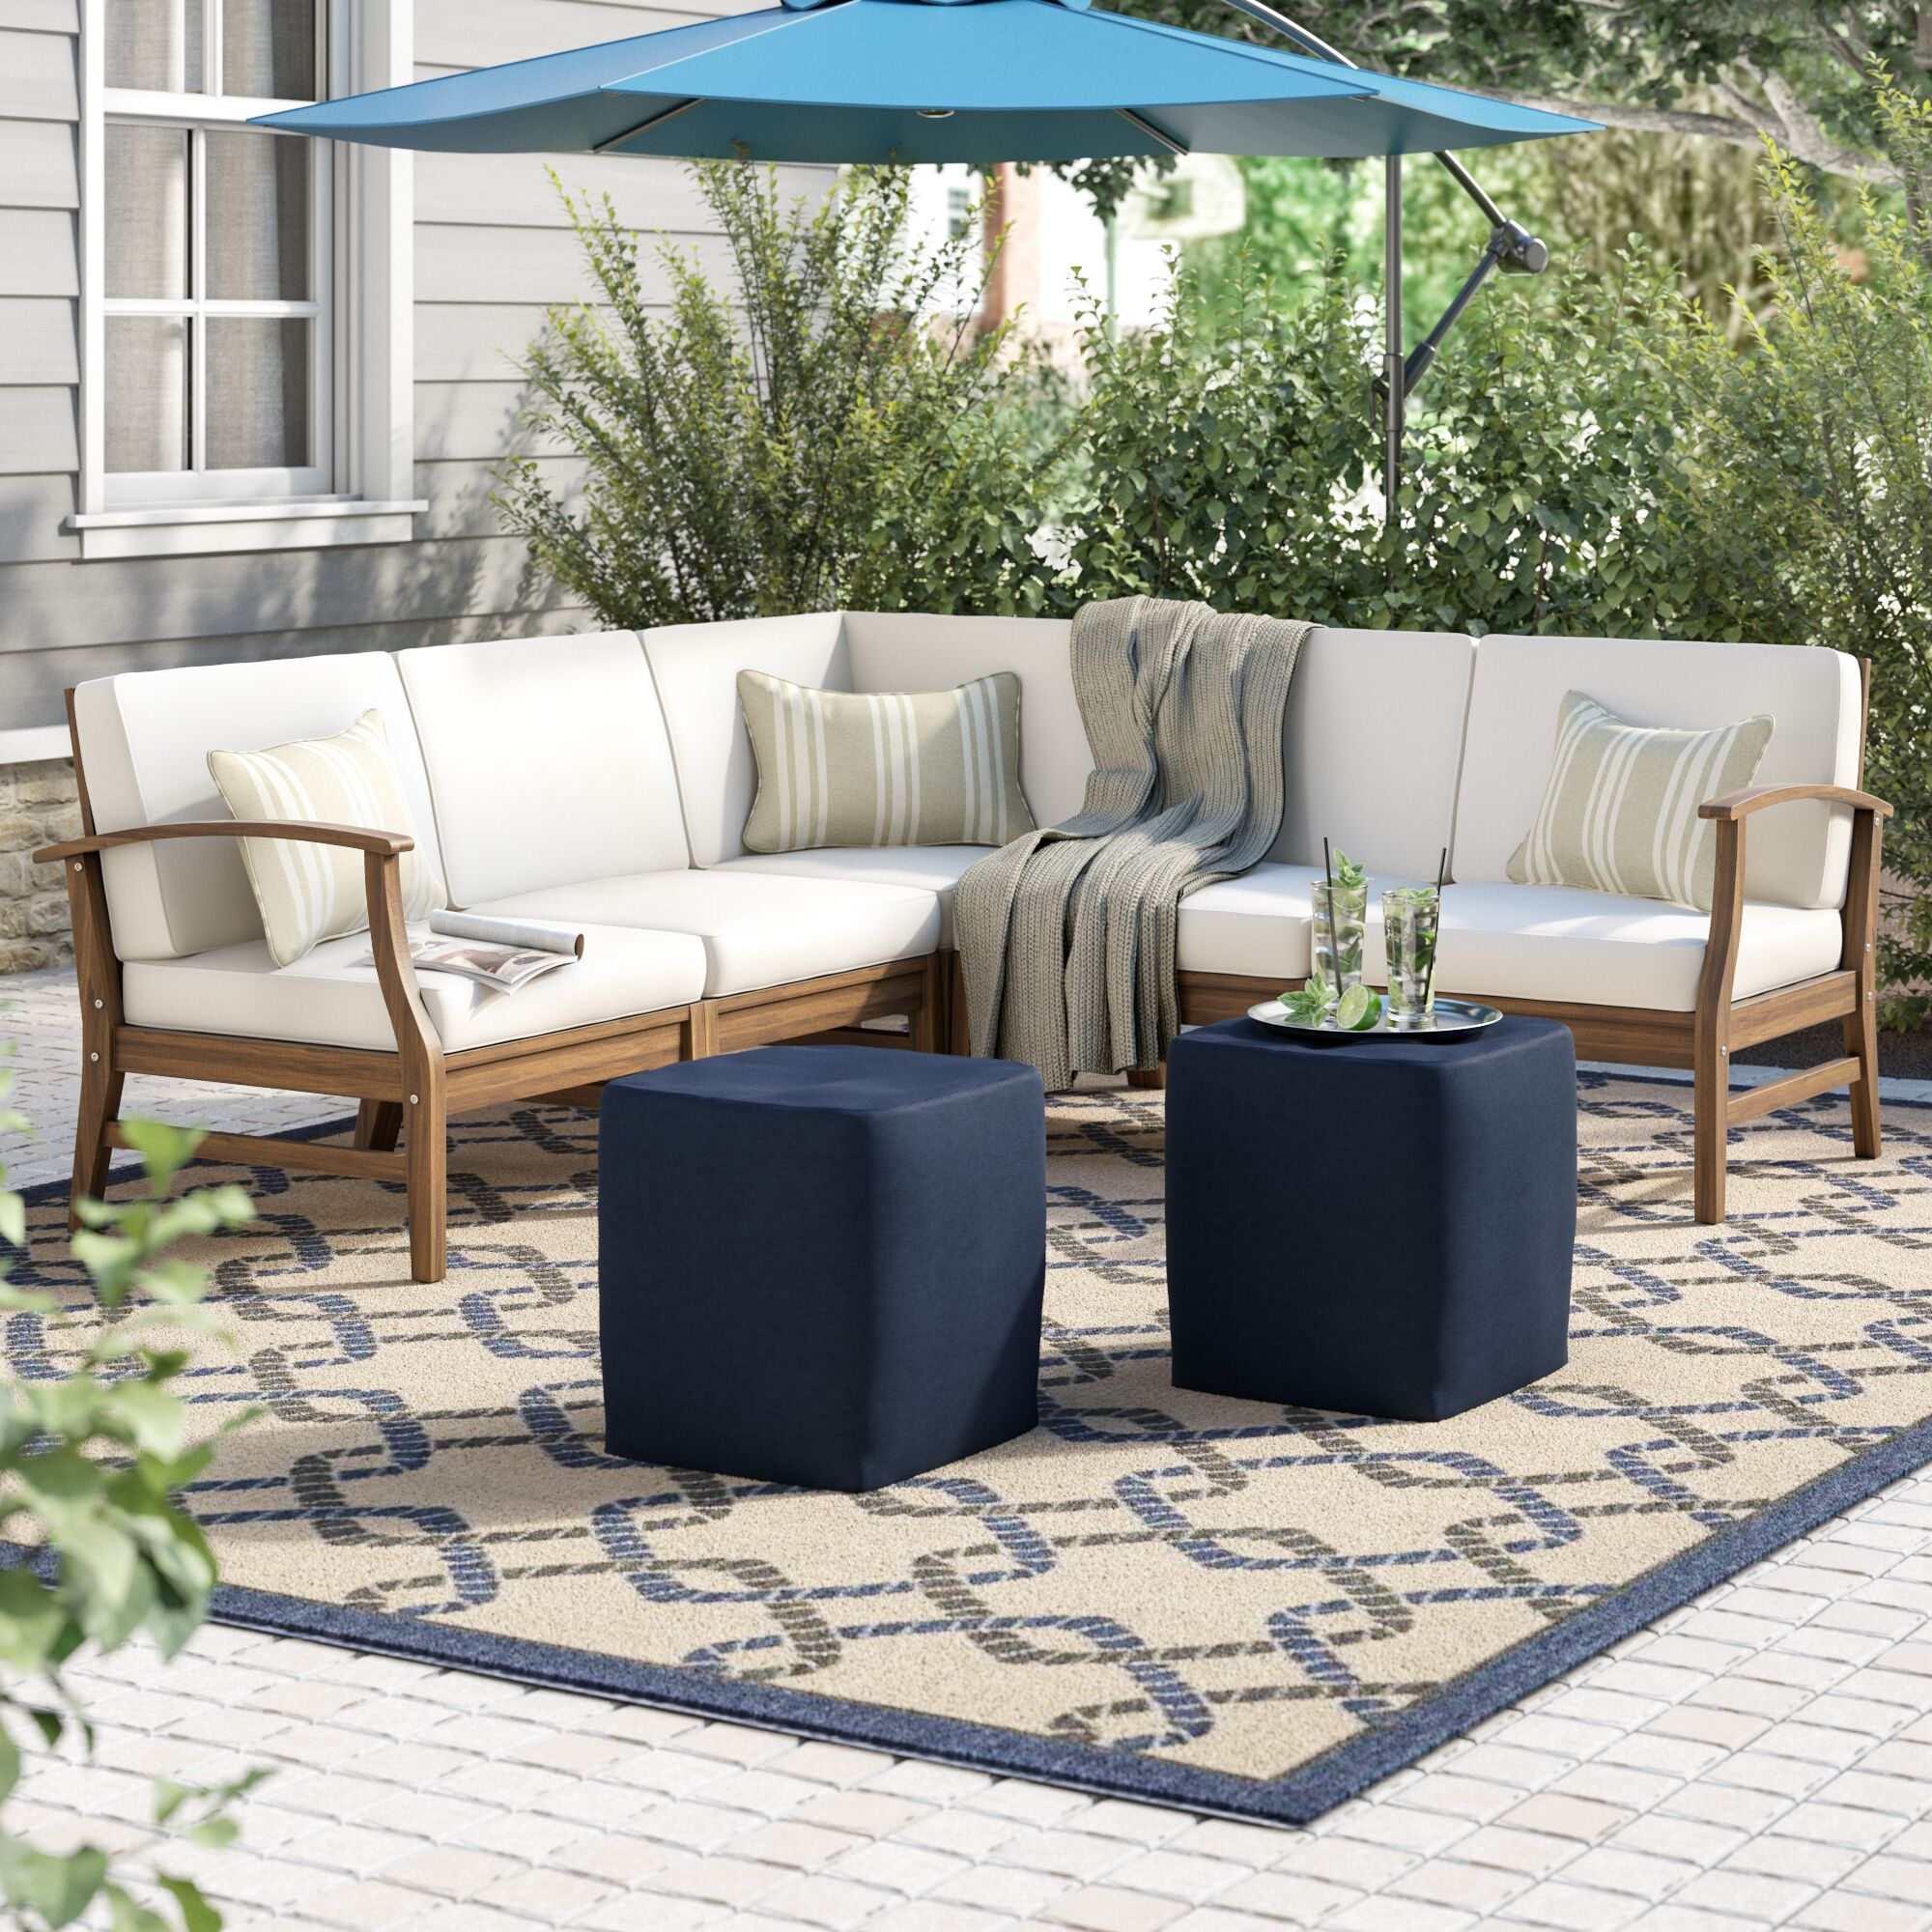 Butler 5 Piece Sectional Set with Cushions Upholstery: Cream